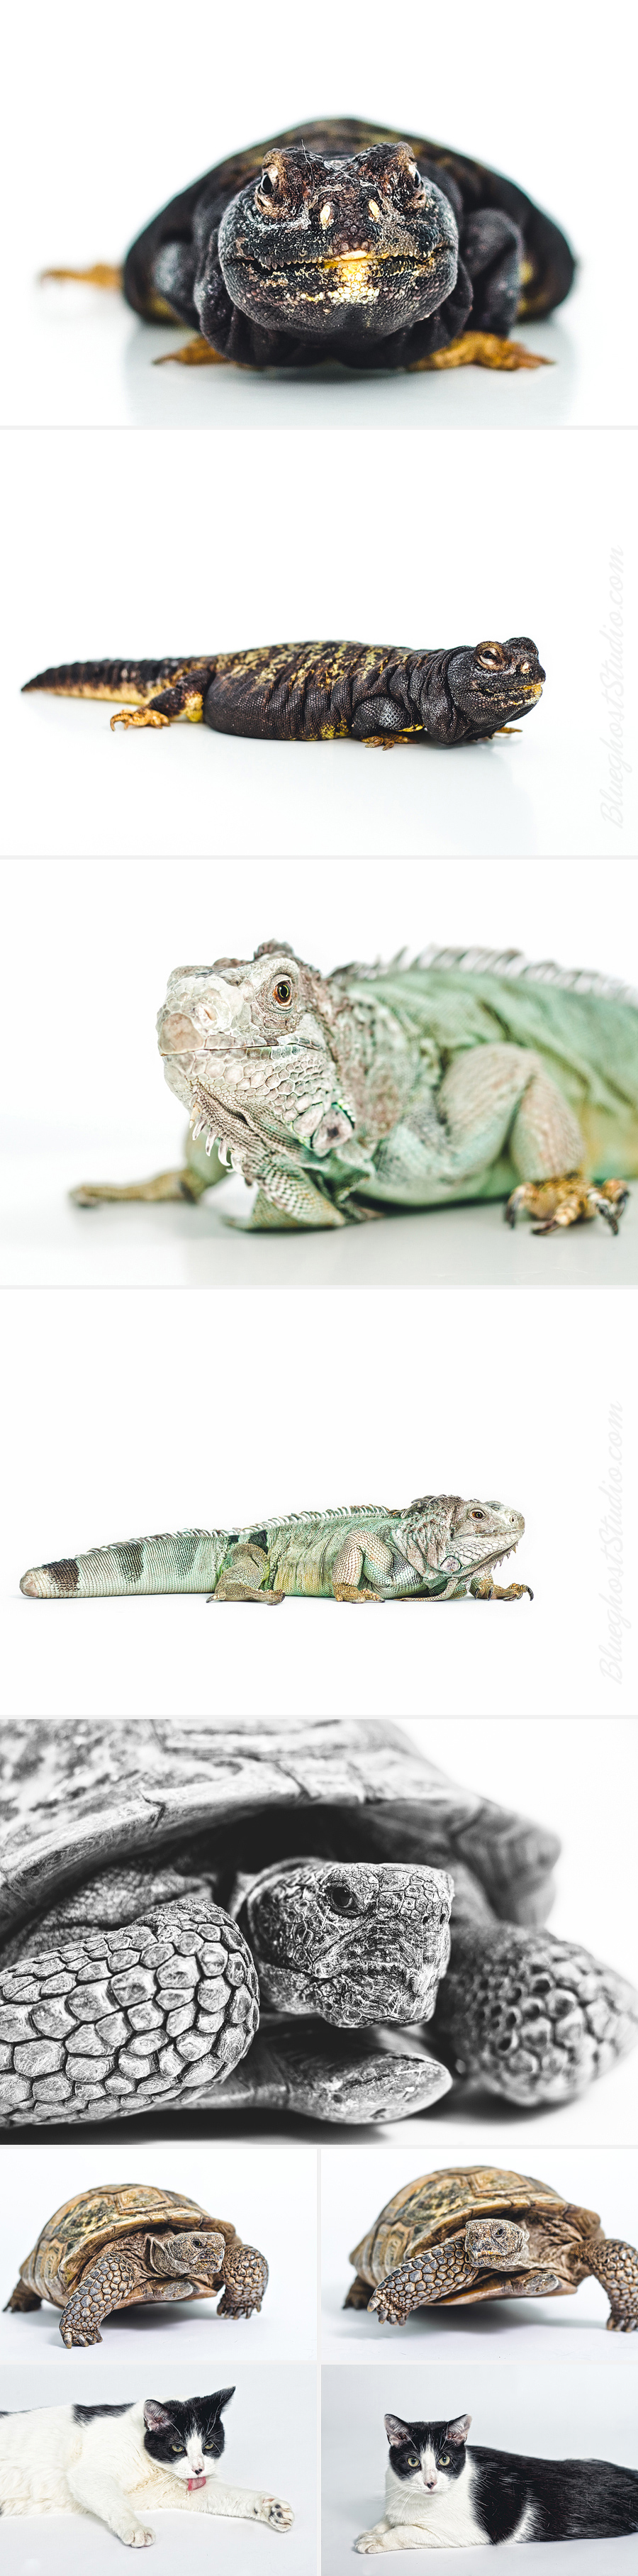 denver-reptile-photographer